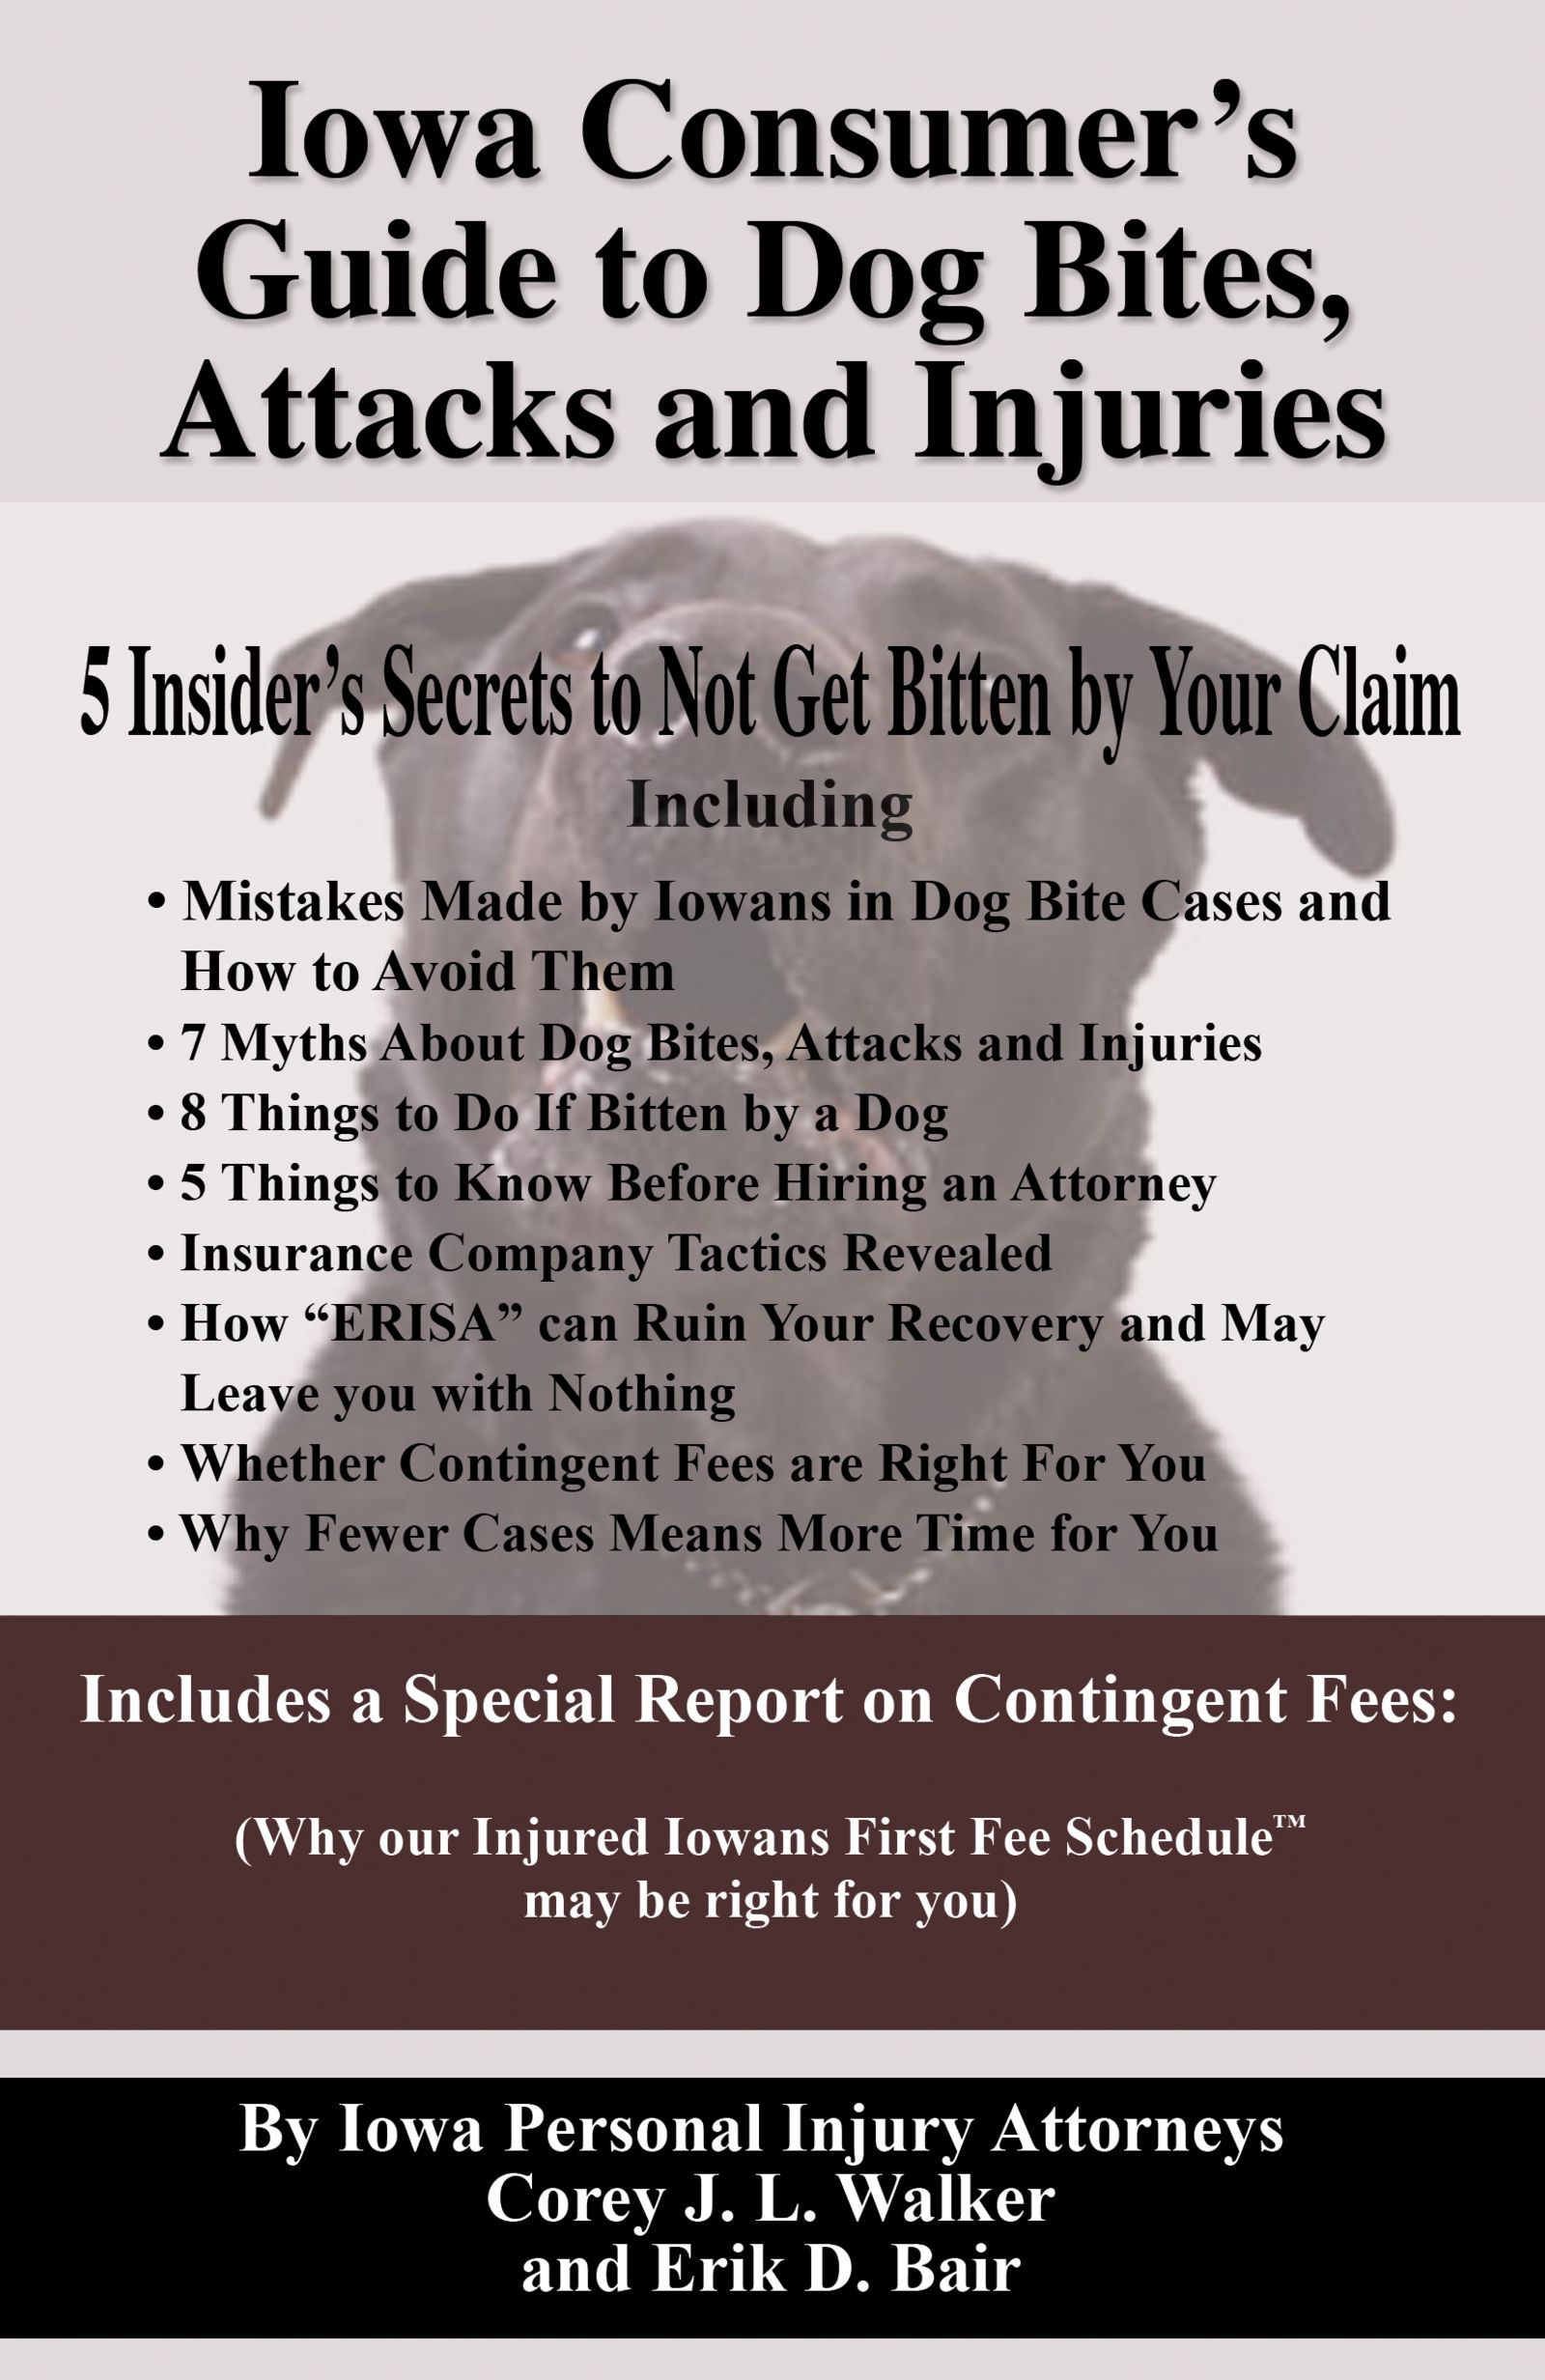 Iowa consumer's guide to dog bites, attacks and injuries book